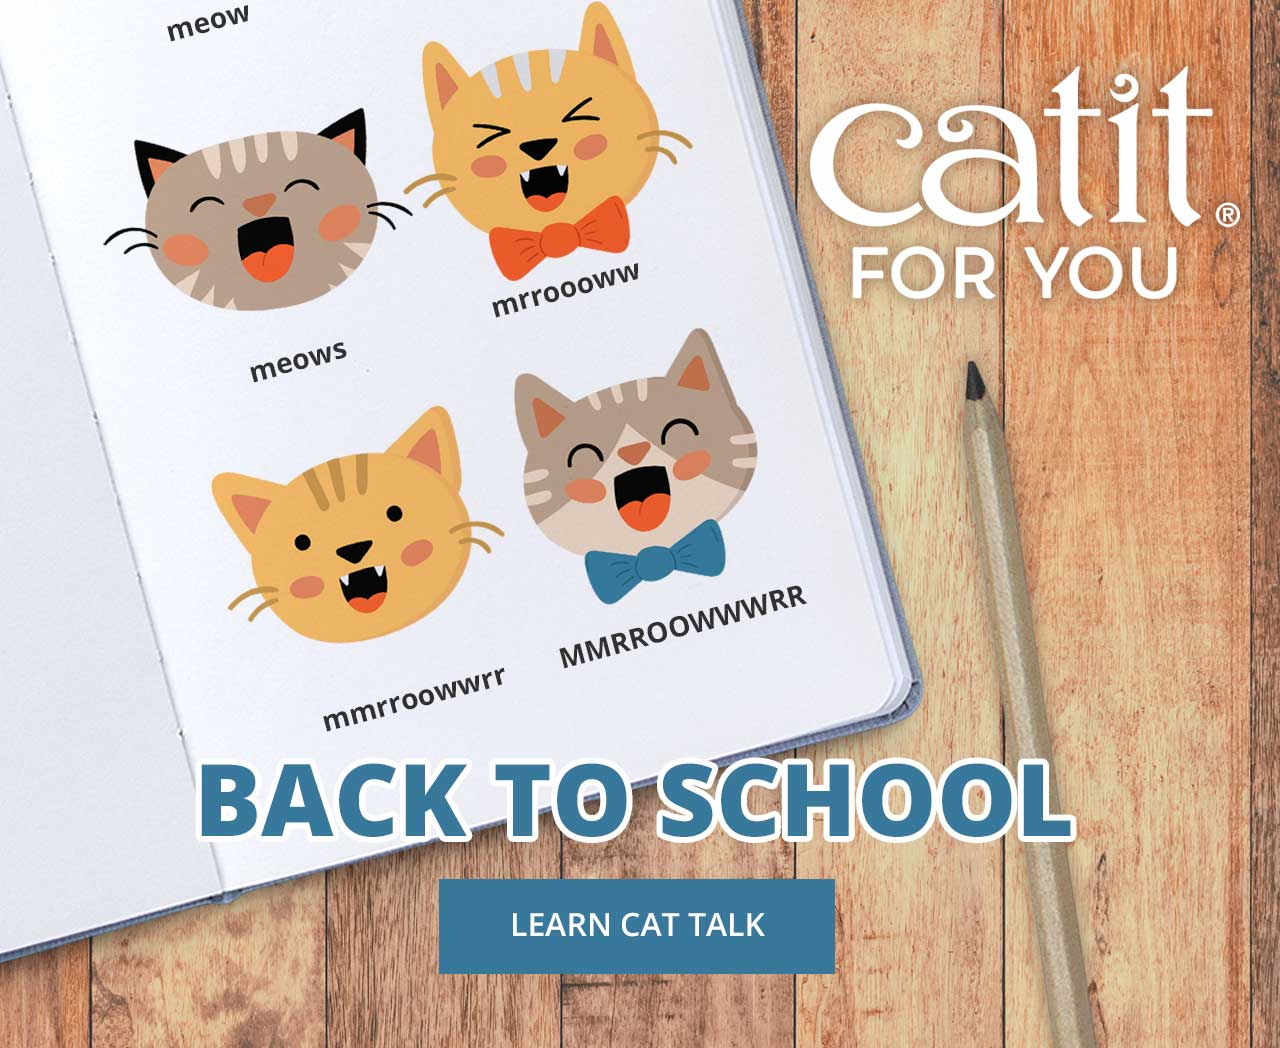 Catit For You-Back to school-learn cat talk